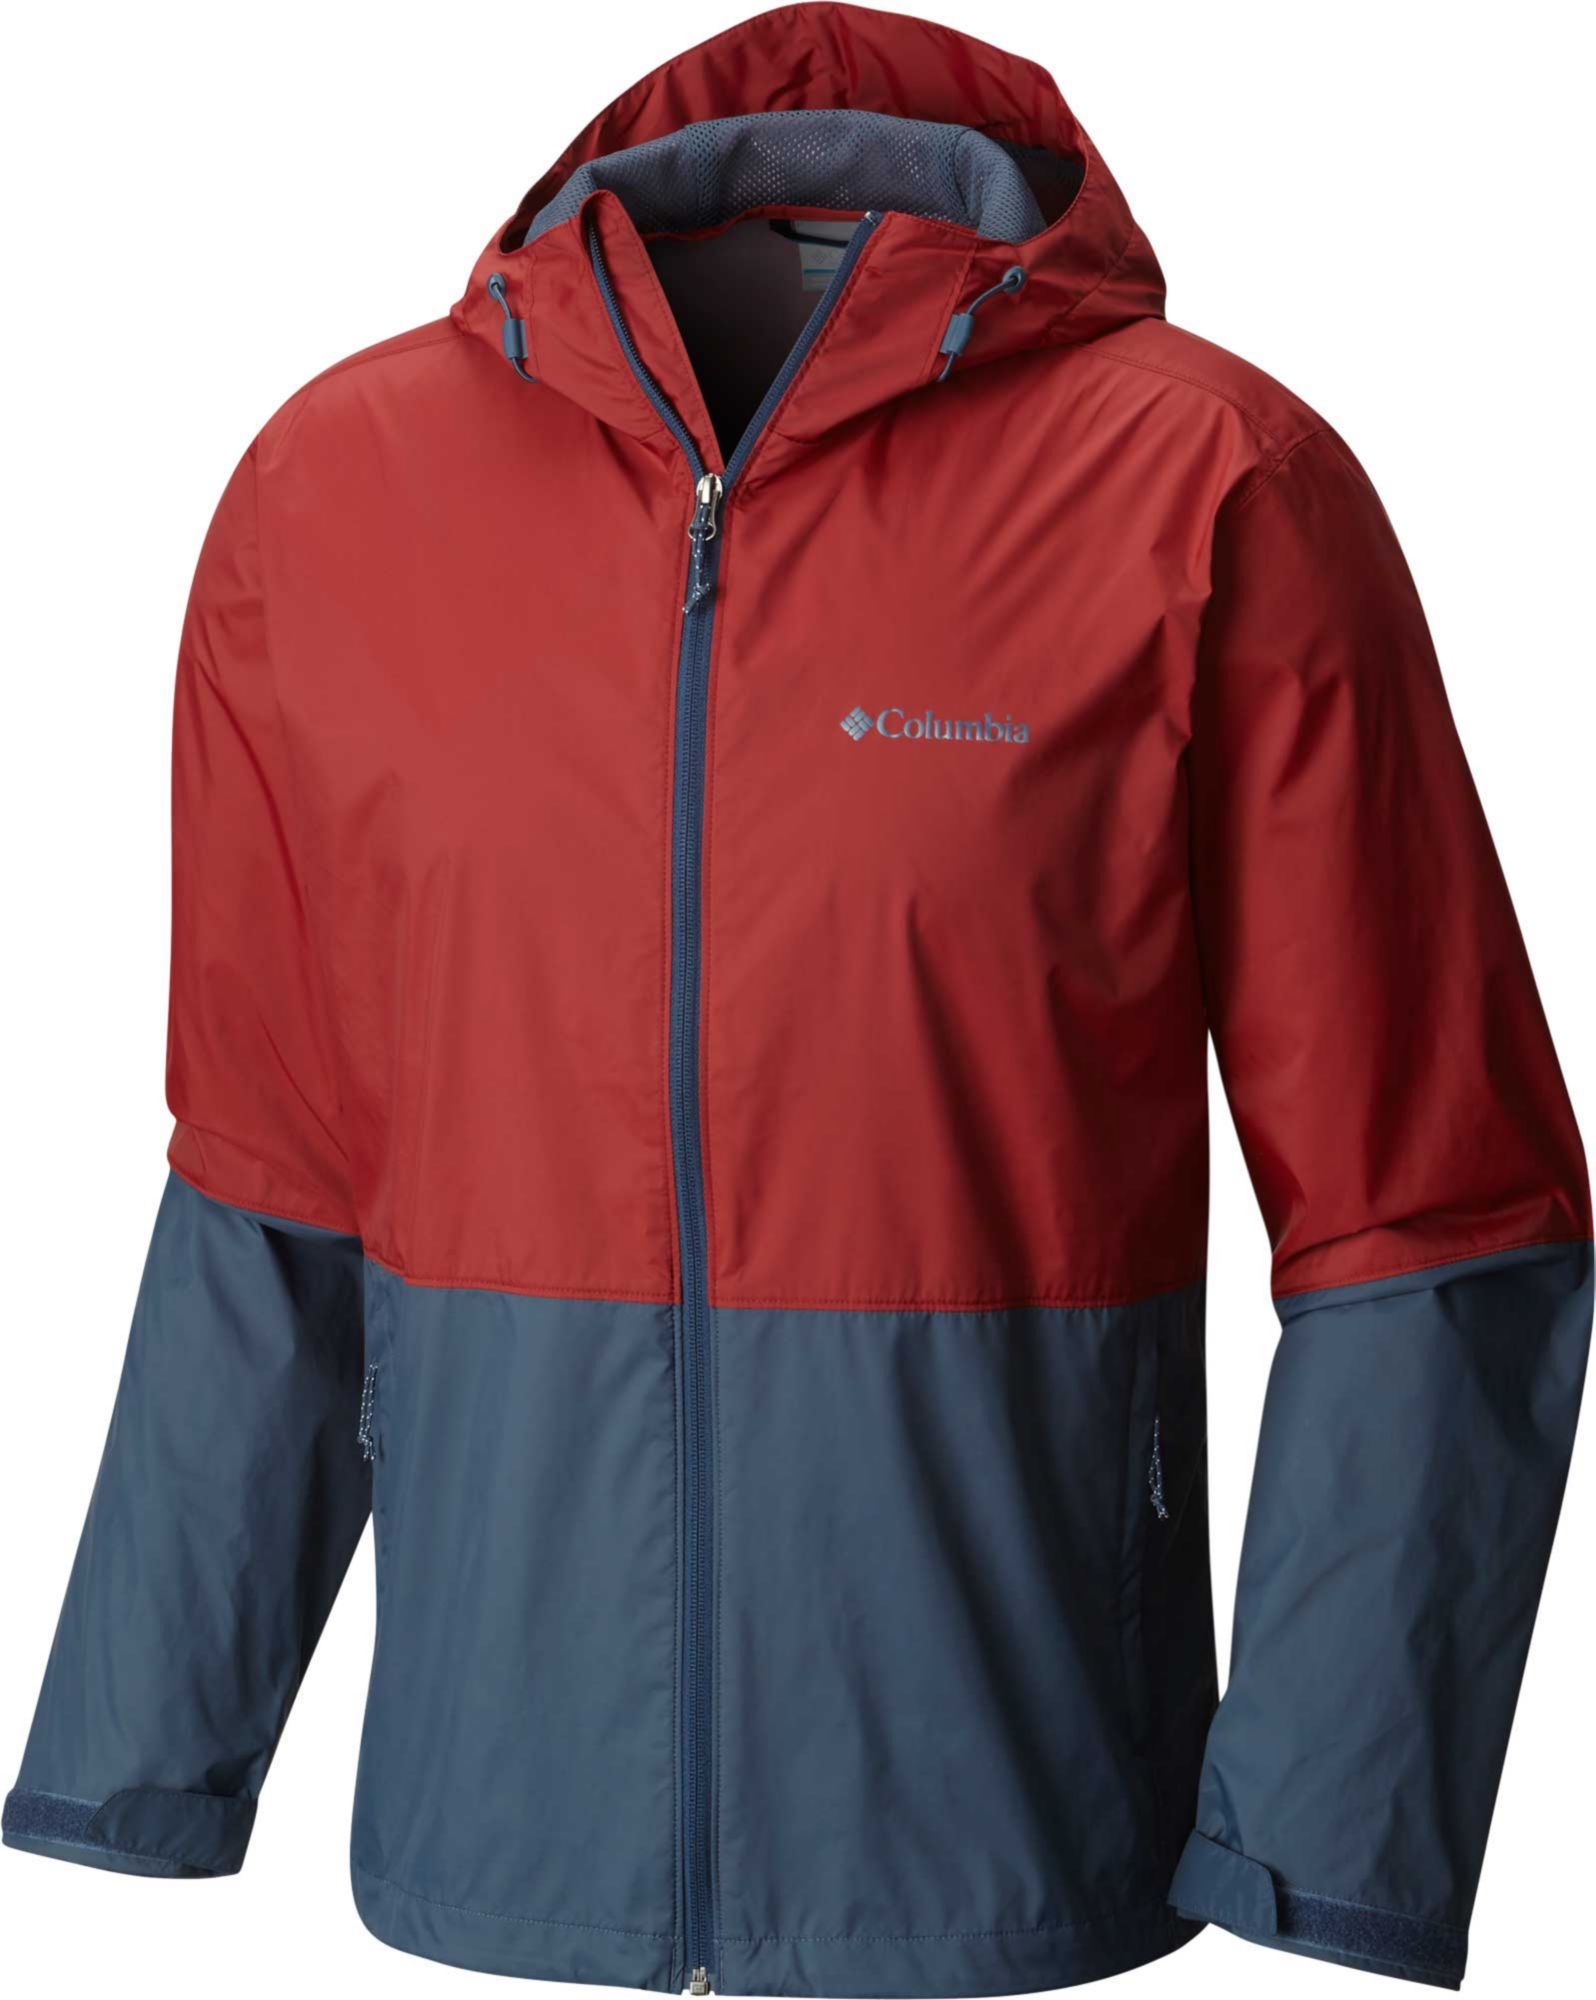 Columbia Men's Roan Mountain Rain Jacket | DICK'S Sporting Goods